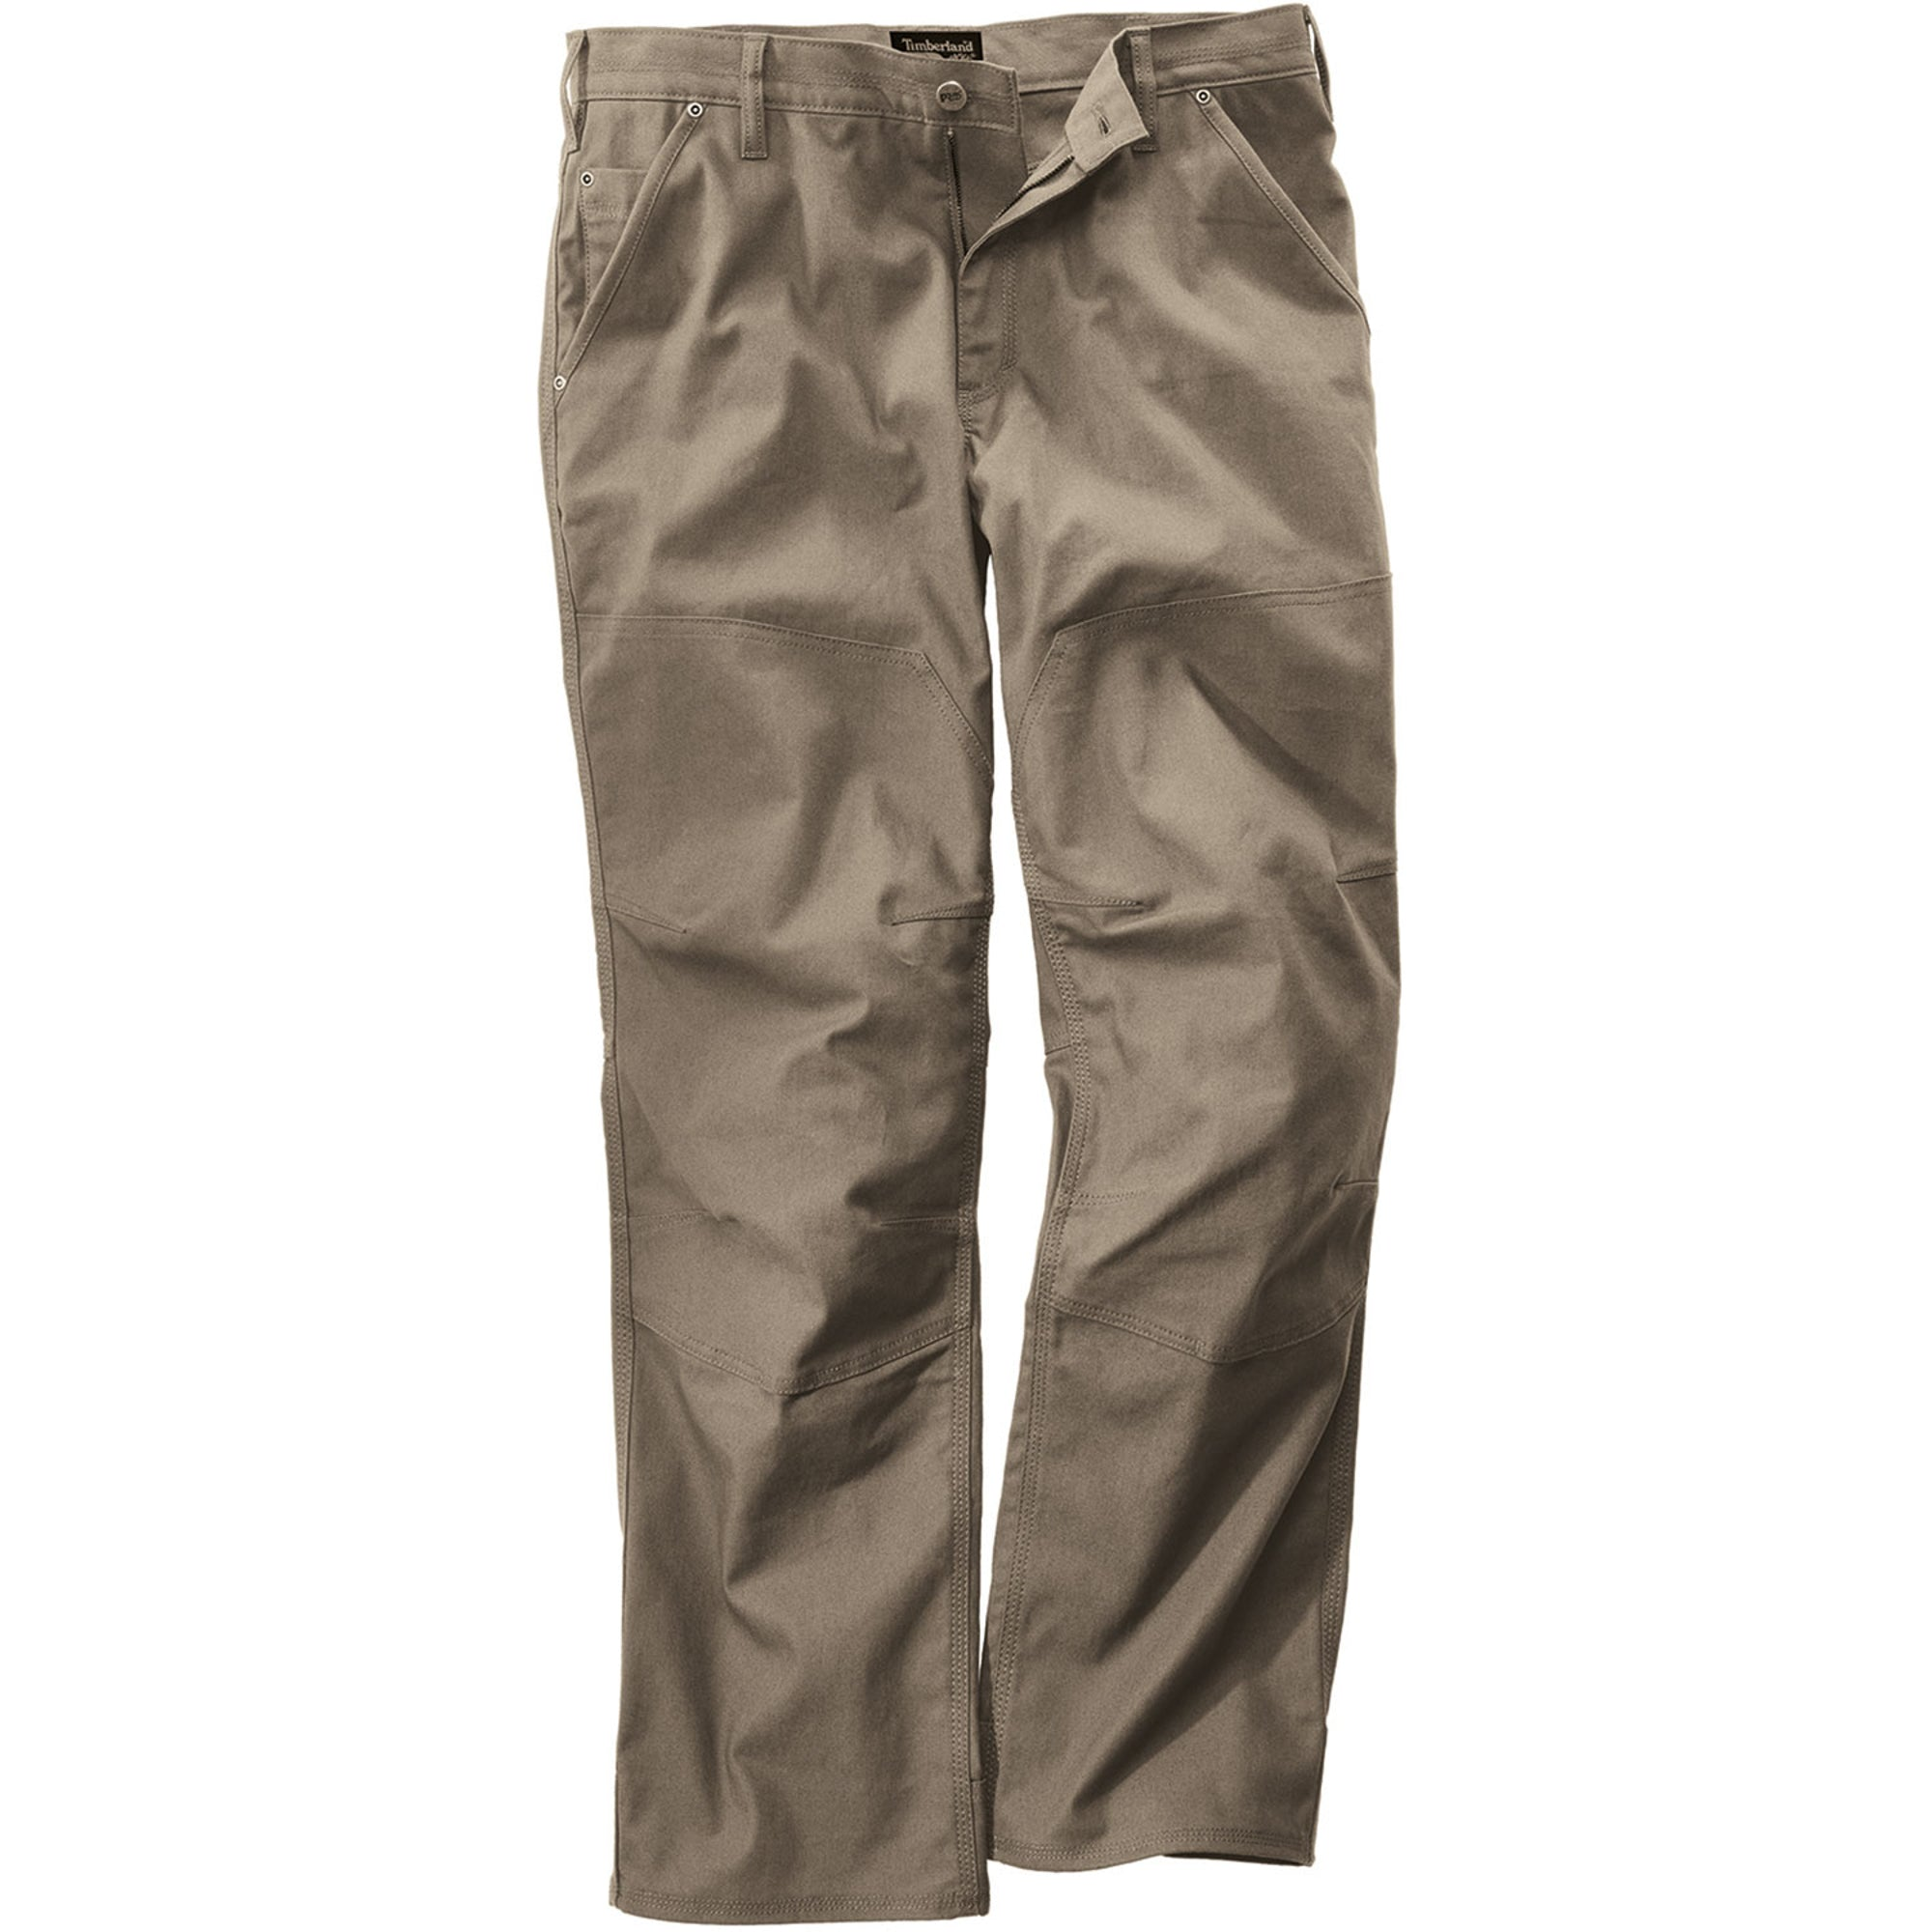 sleek buy best 60% cheap Timberland Pro Gridflex Mens Timber Canvas Stretch Work Pants